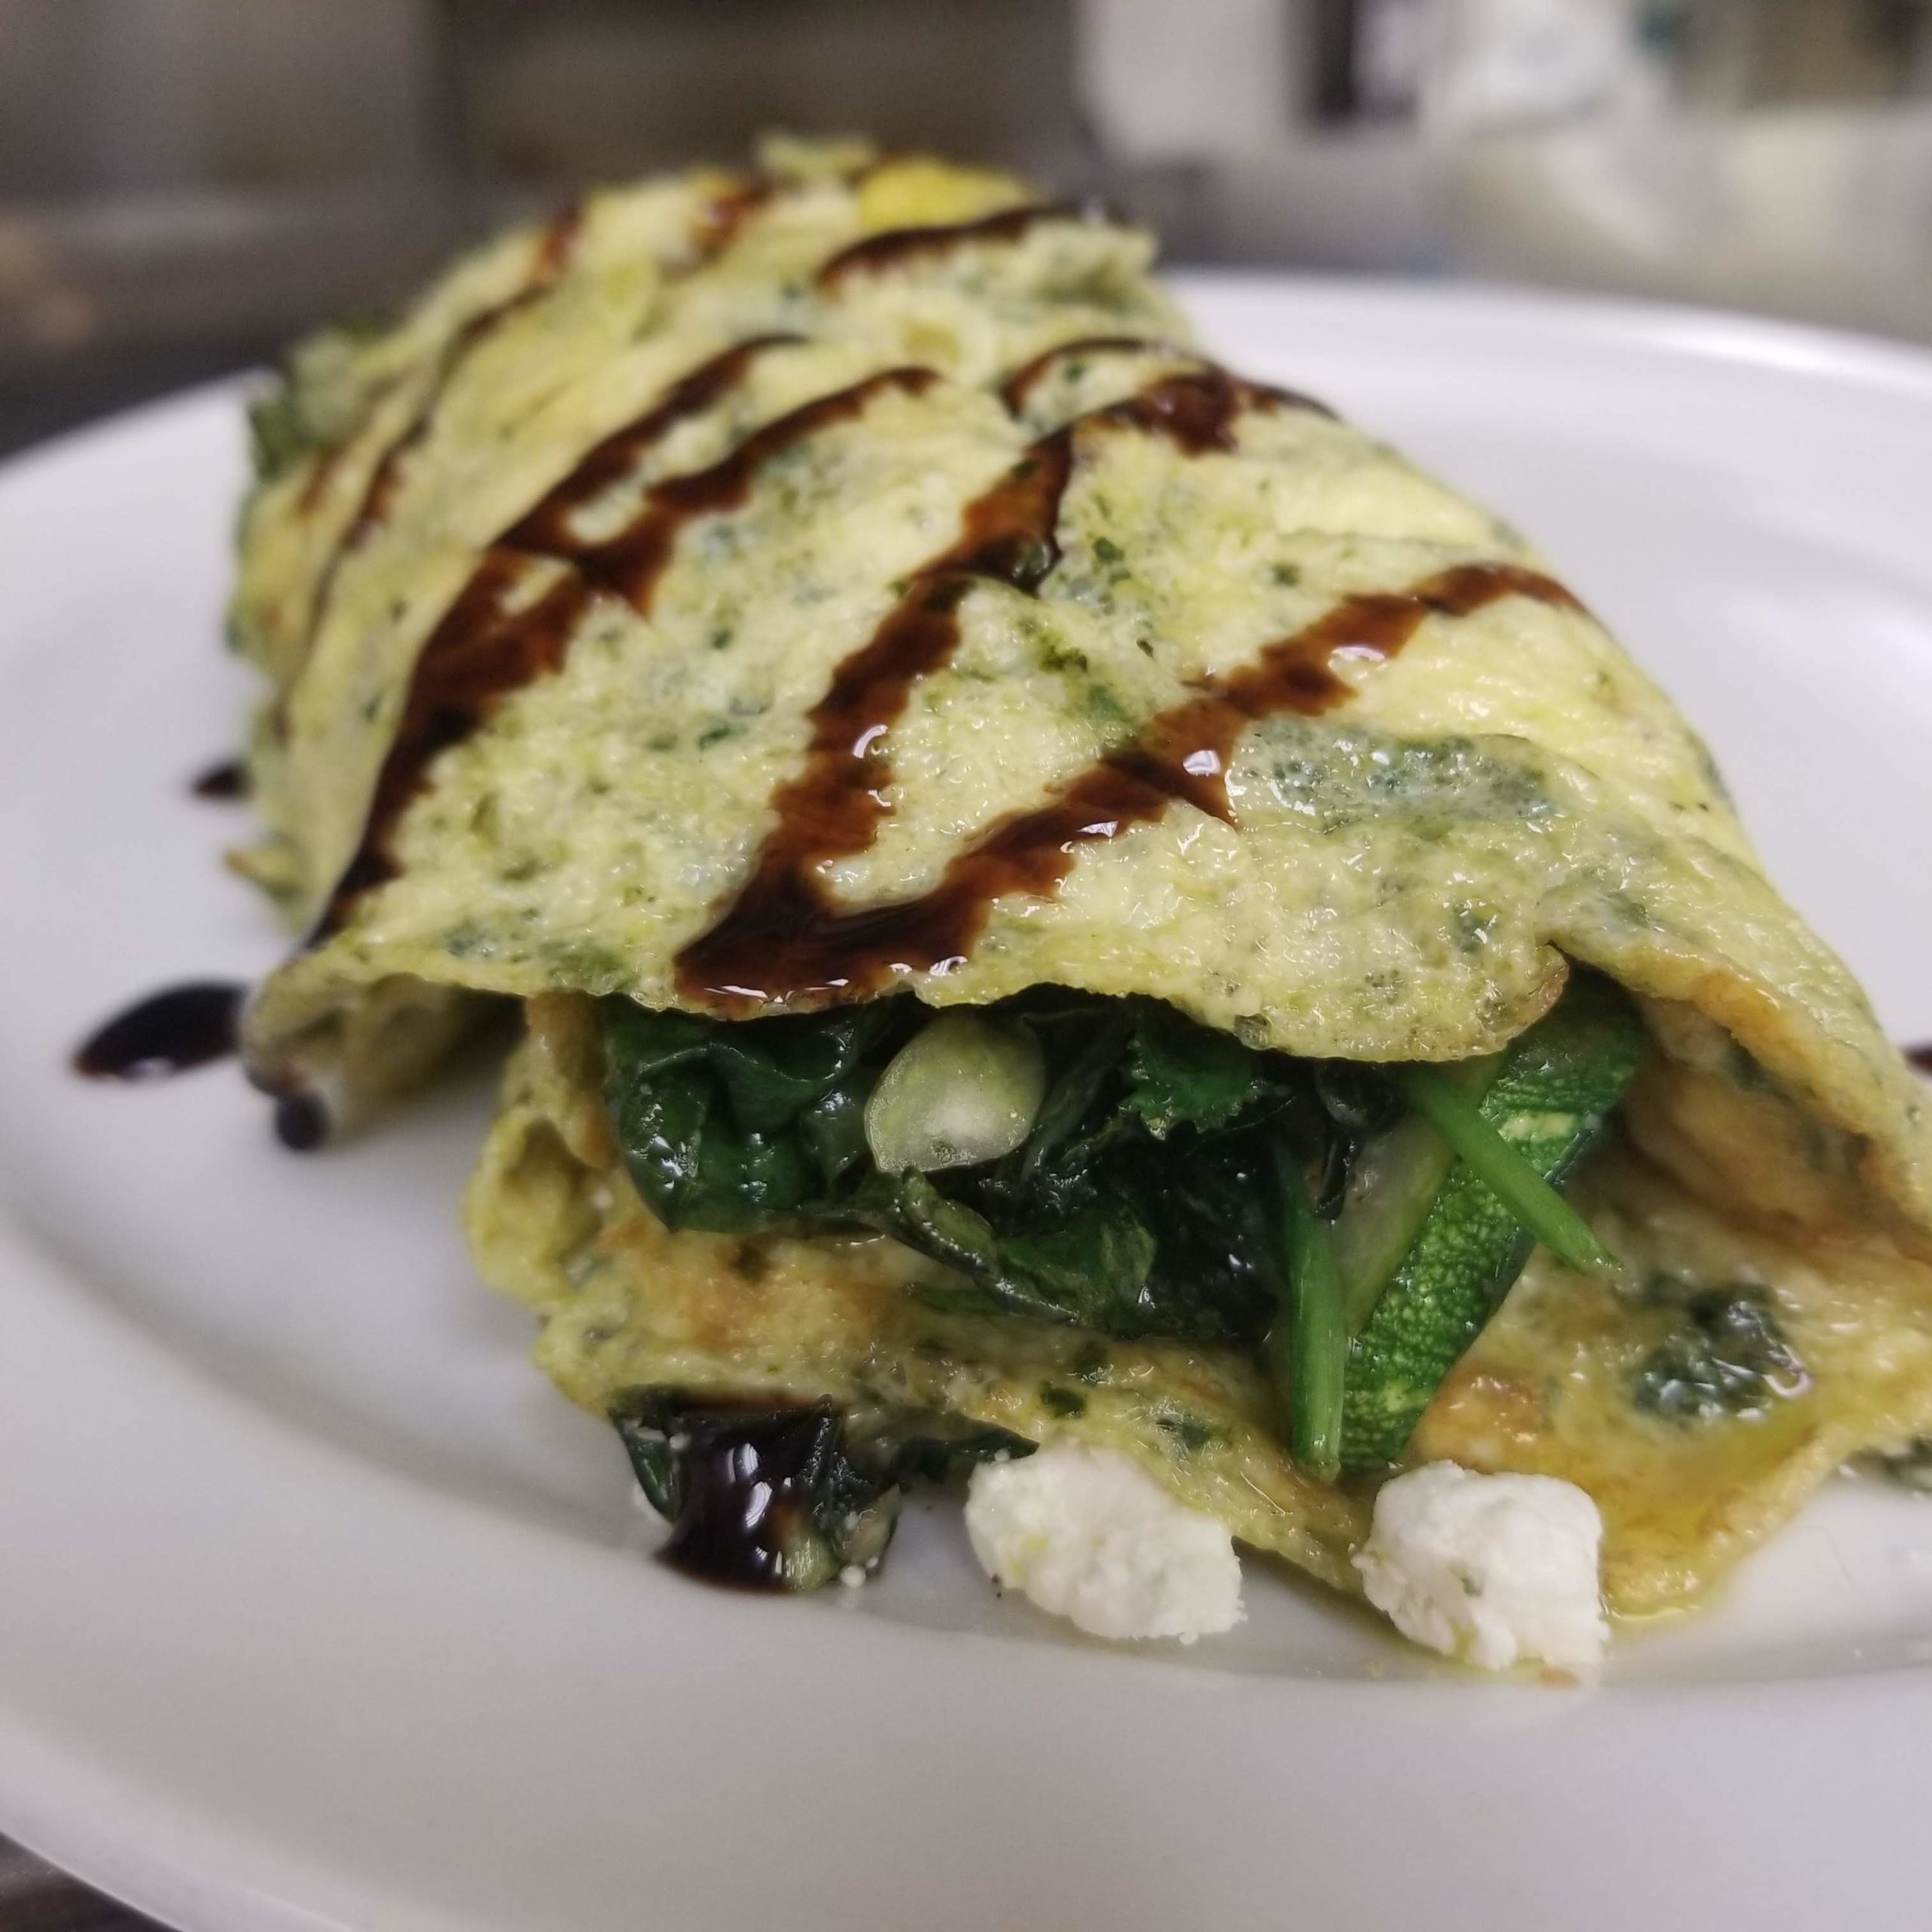 Omelet No. 16